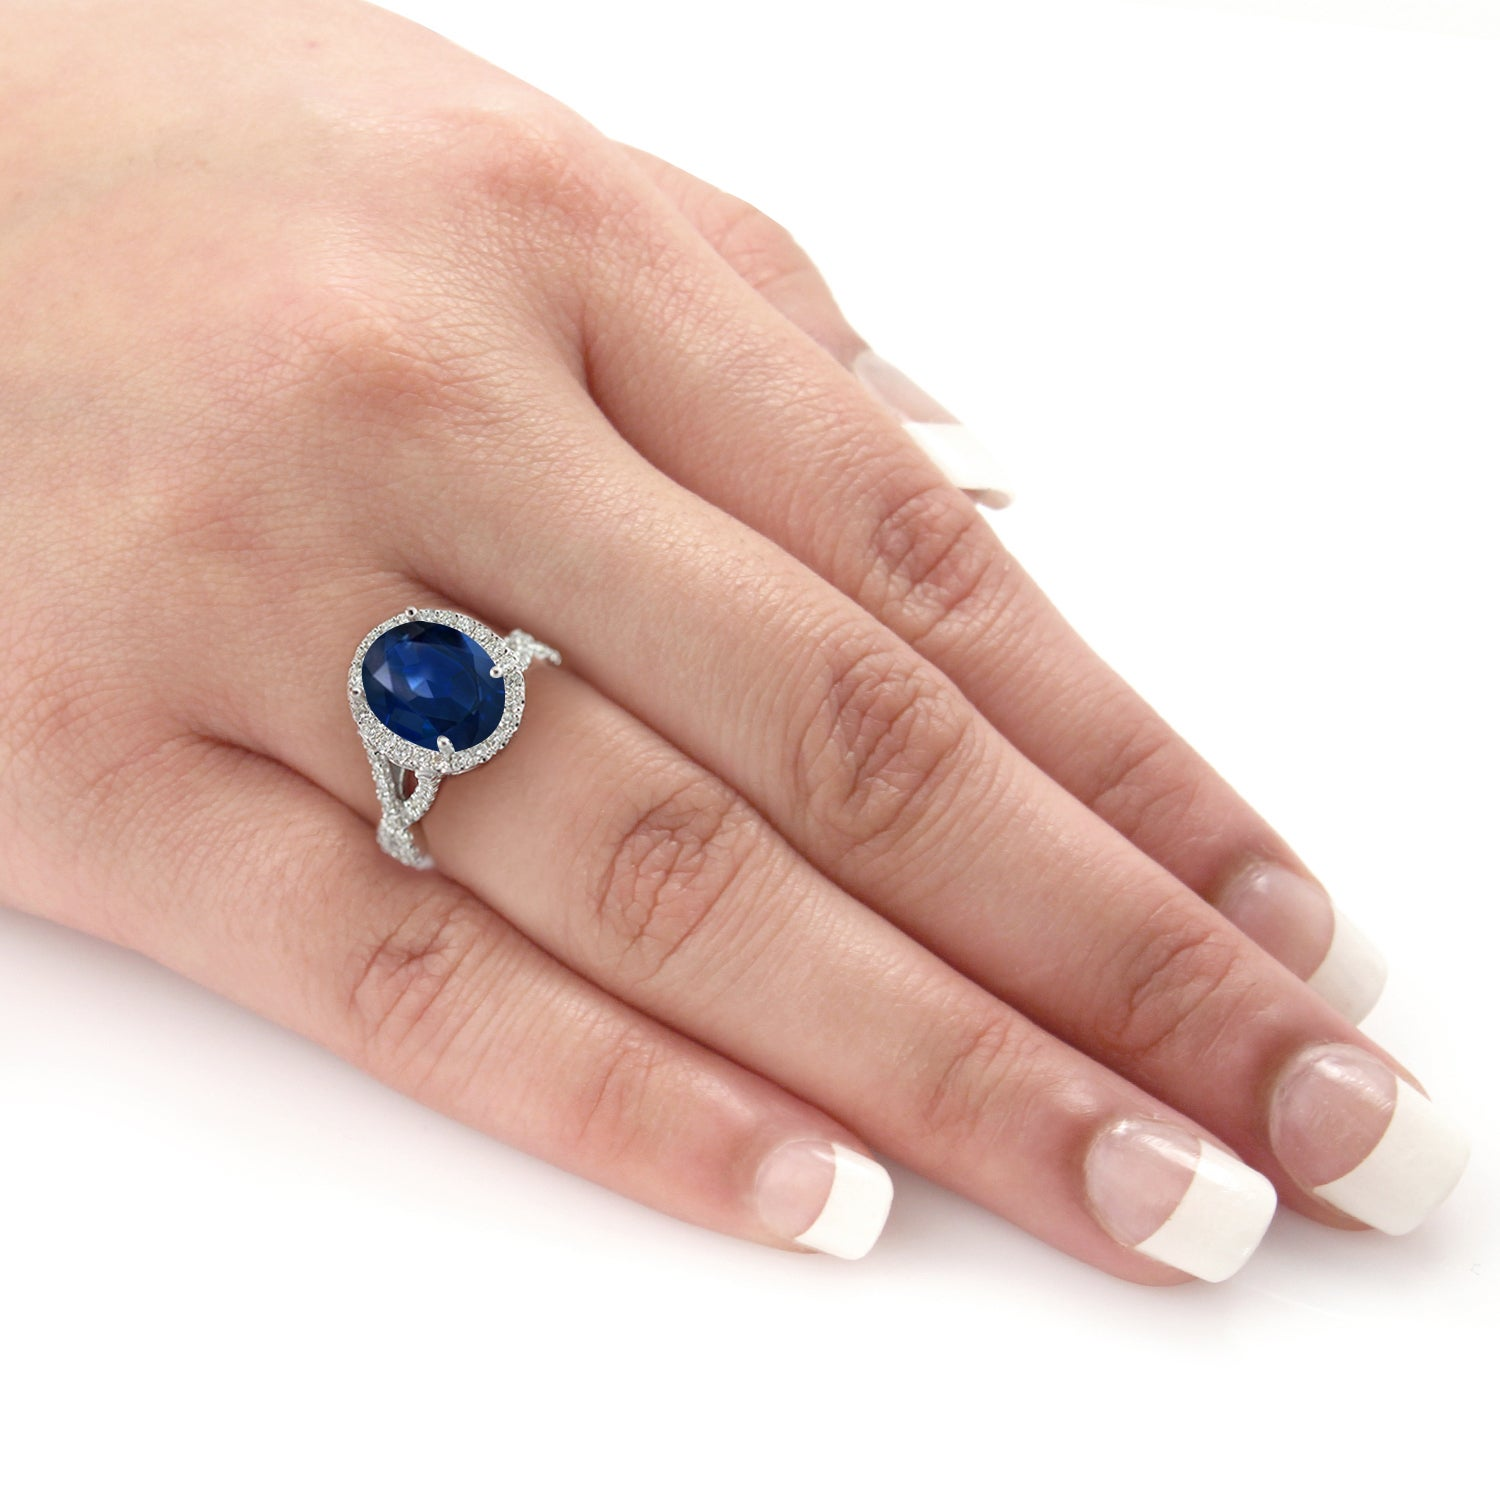 weldons stone ring shop of three and dublin sapphire diamond